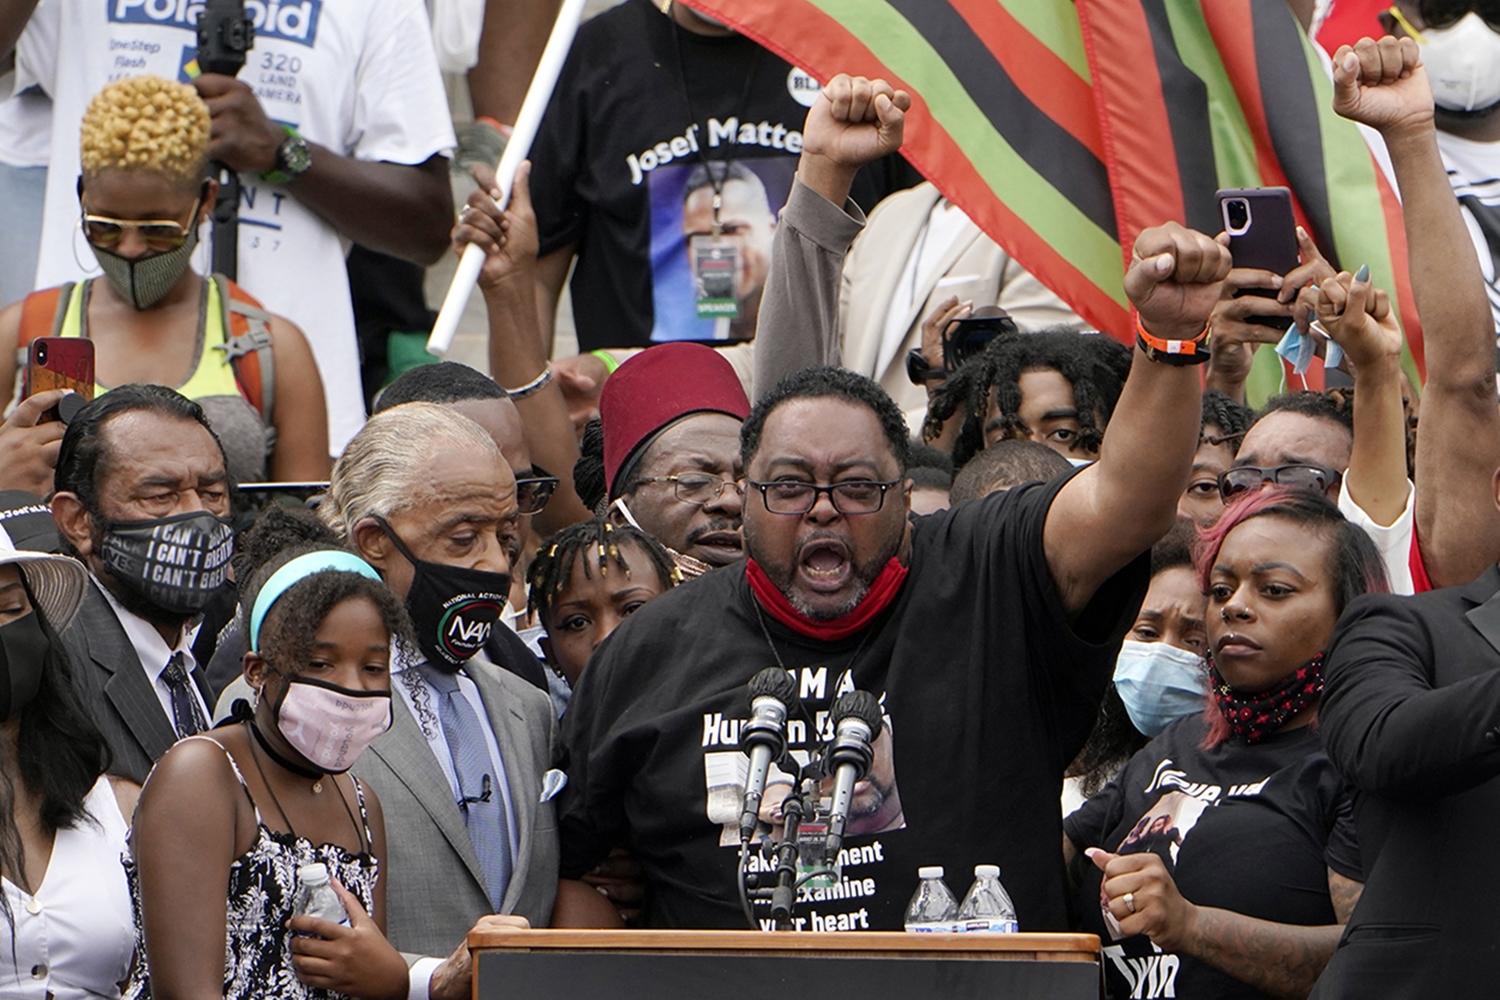 Jacob Blake Sr., whose son was shot by police in Kenosha, Wisconsin, earlier in the week, speaks at the March on Washington at the Lincoln Memorial on Aug. 28. Jacquelyn Martin-Pool/Getty Images